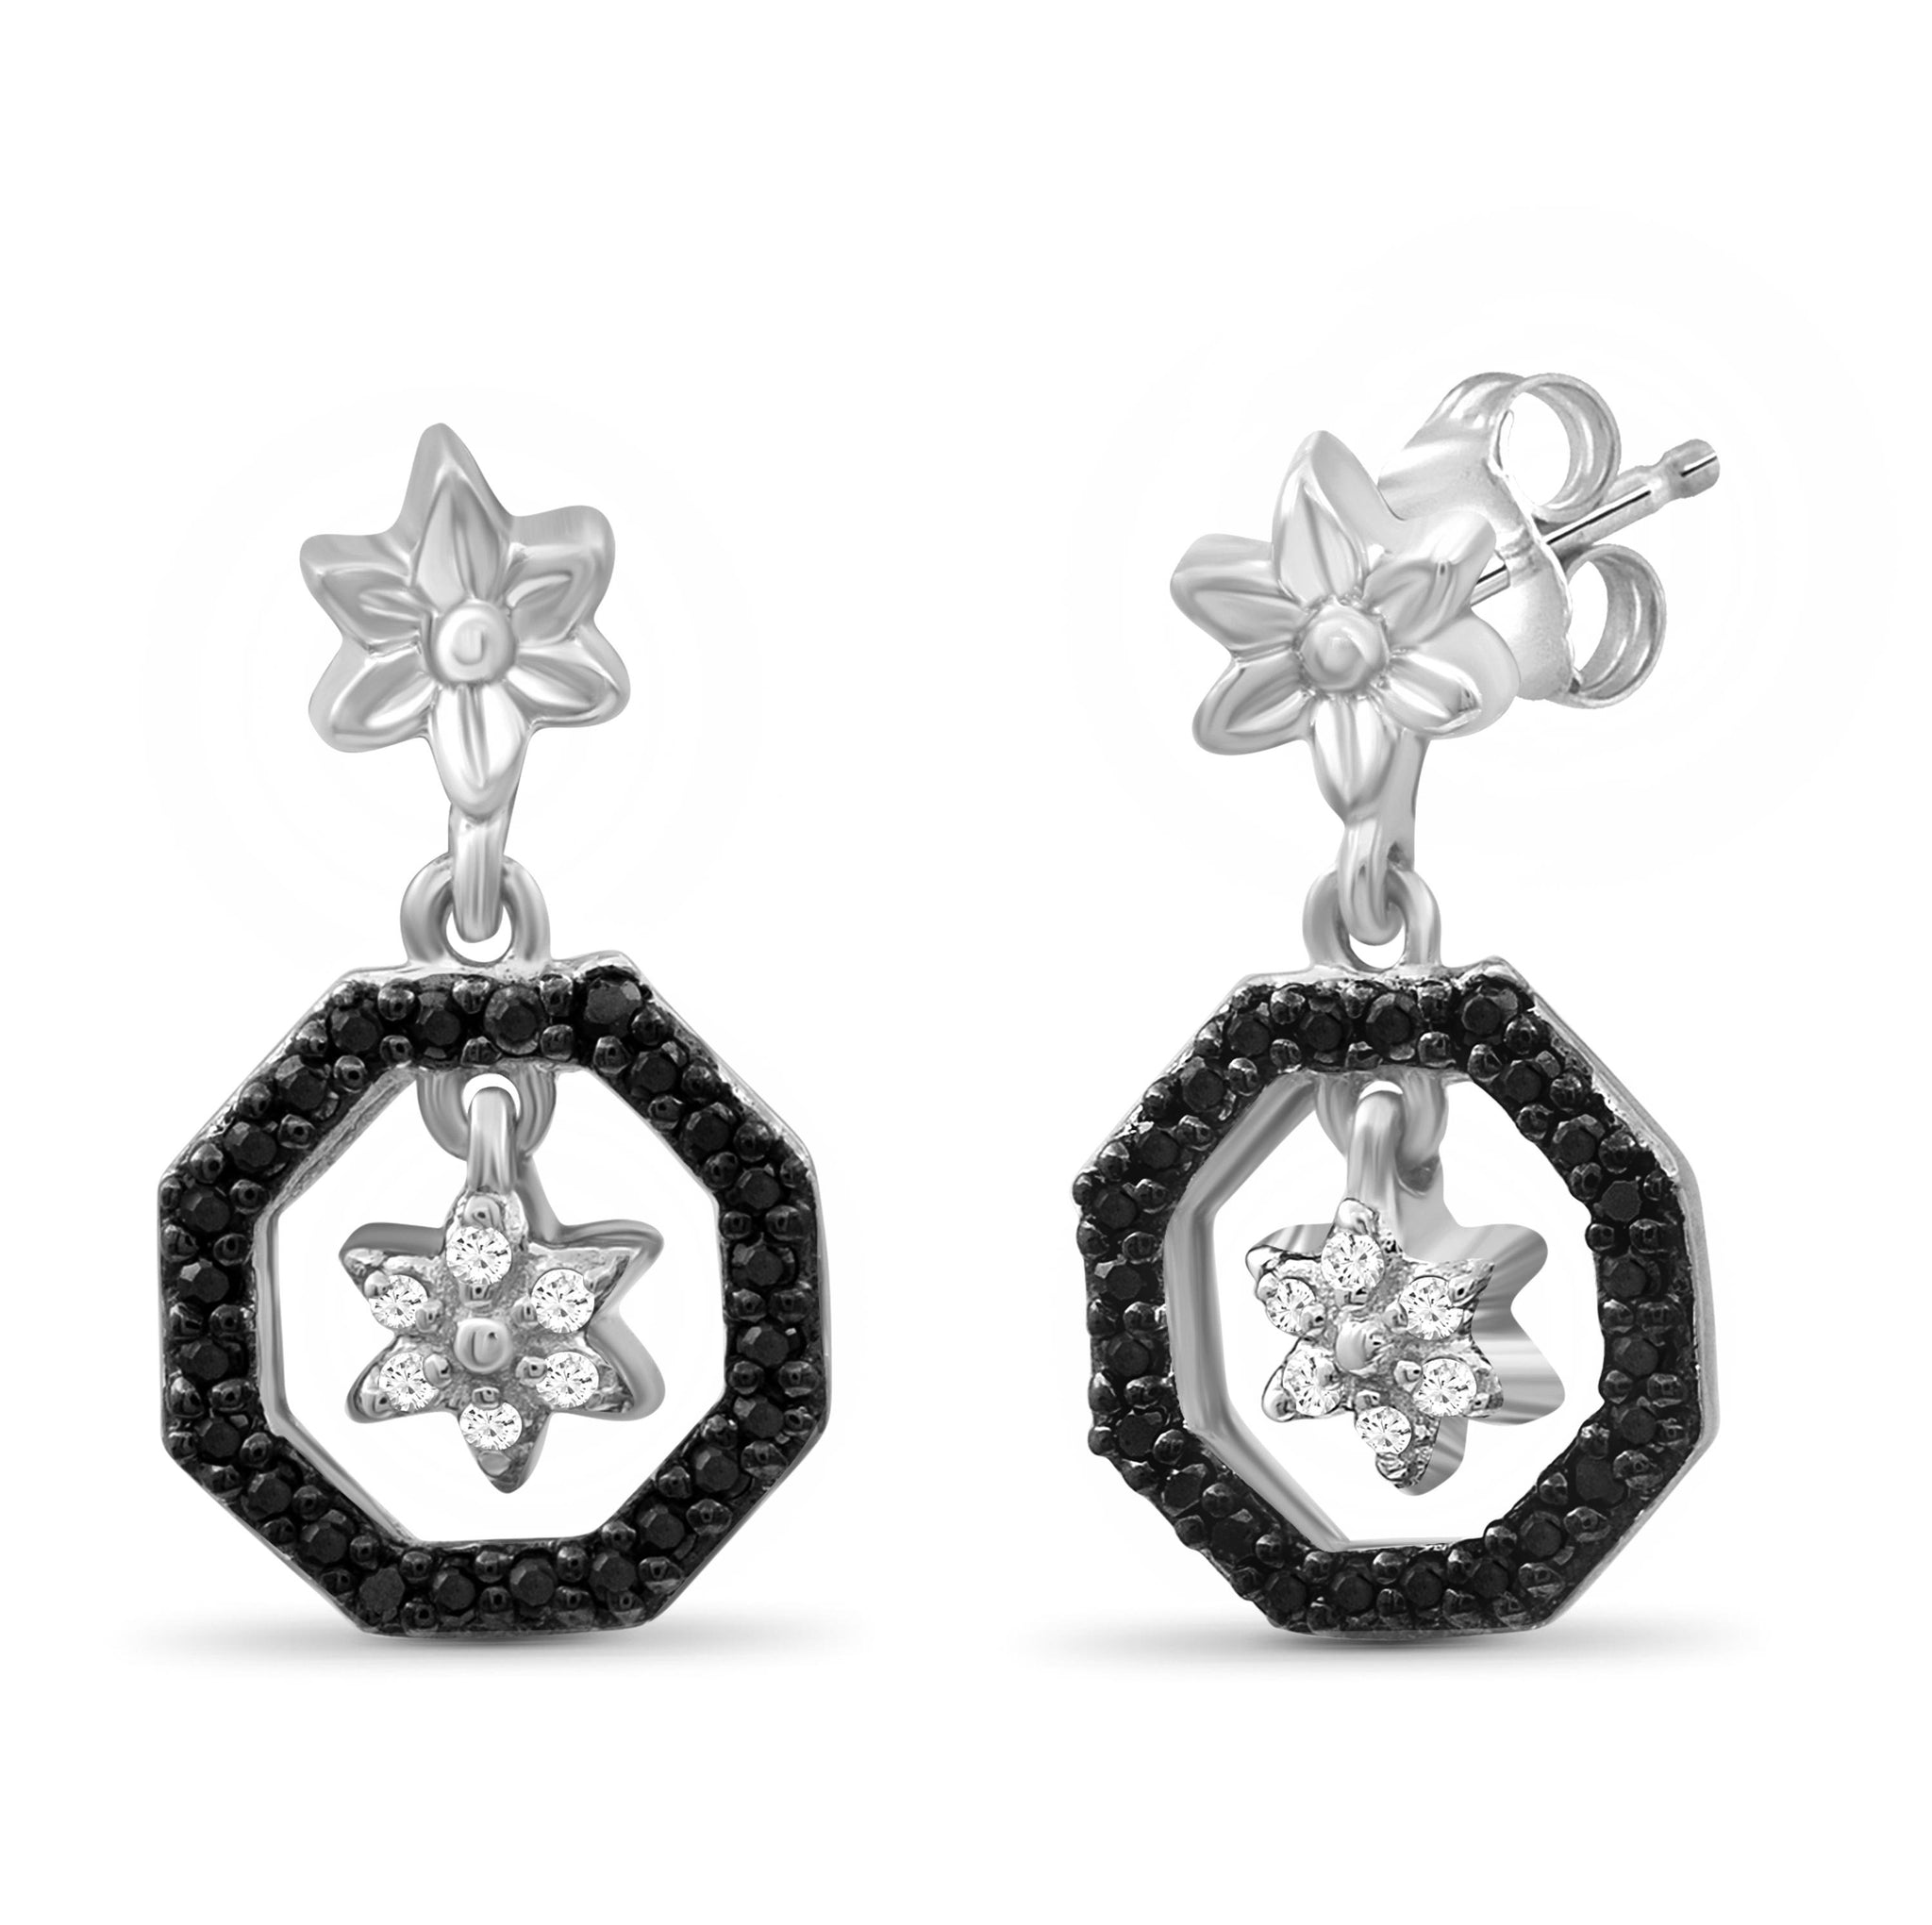 JewelonFire 1/7 Carat T.W. Black And White Diamond Sterling Silver Flower Octagon Earrings - Assorted Colors